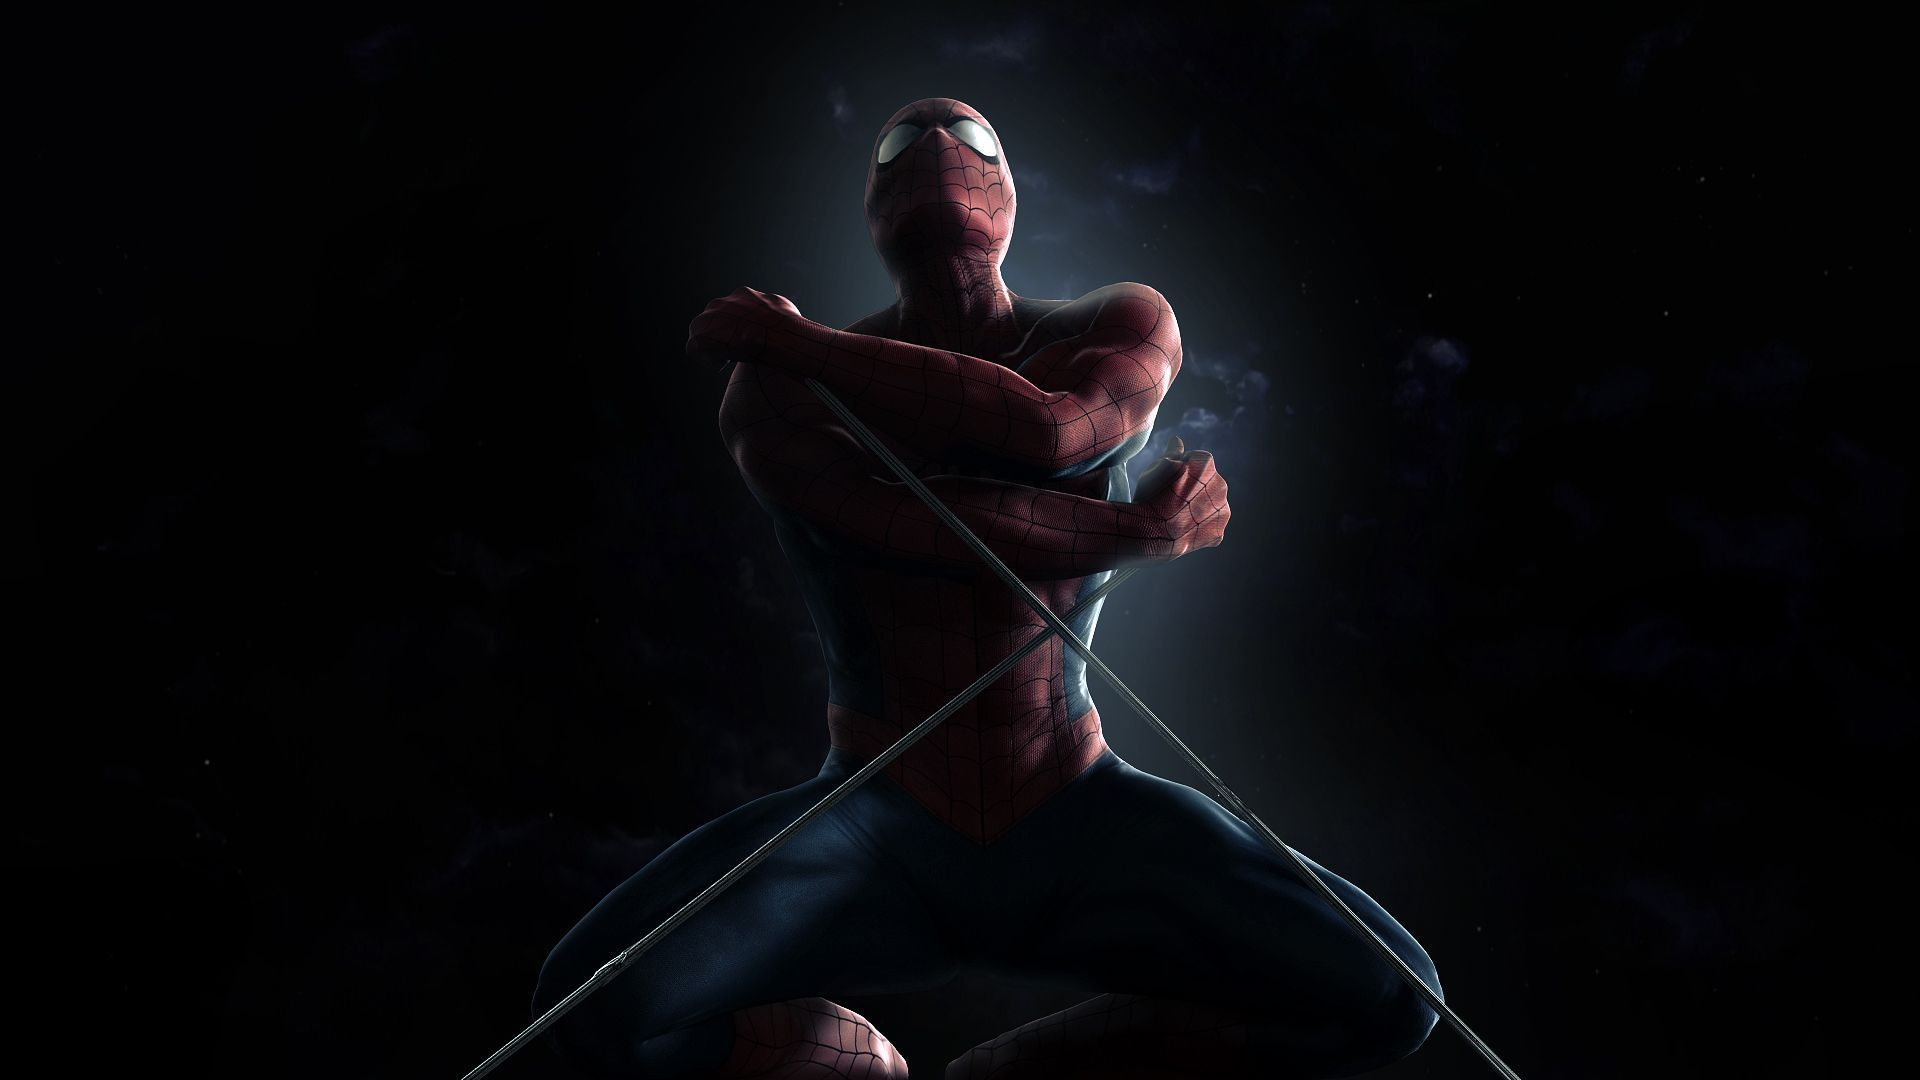 Spiderman HD Wallpapers Group